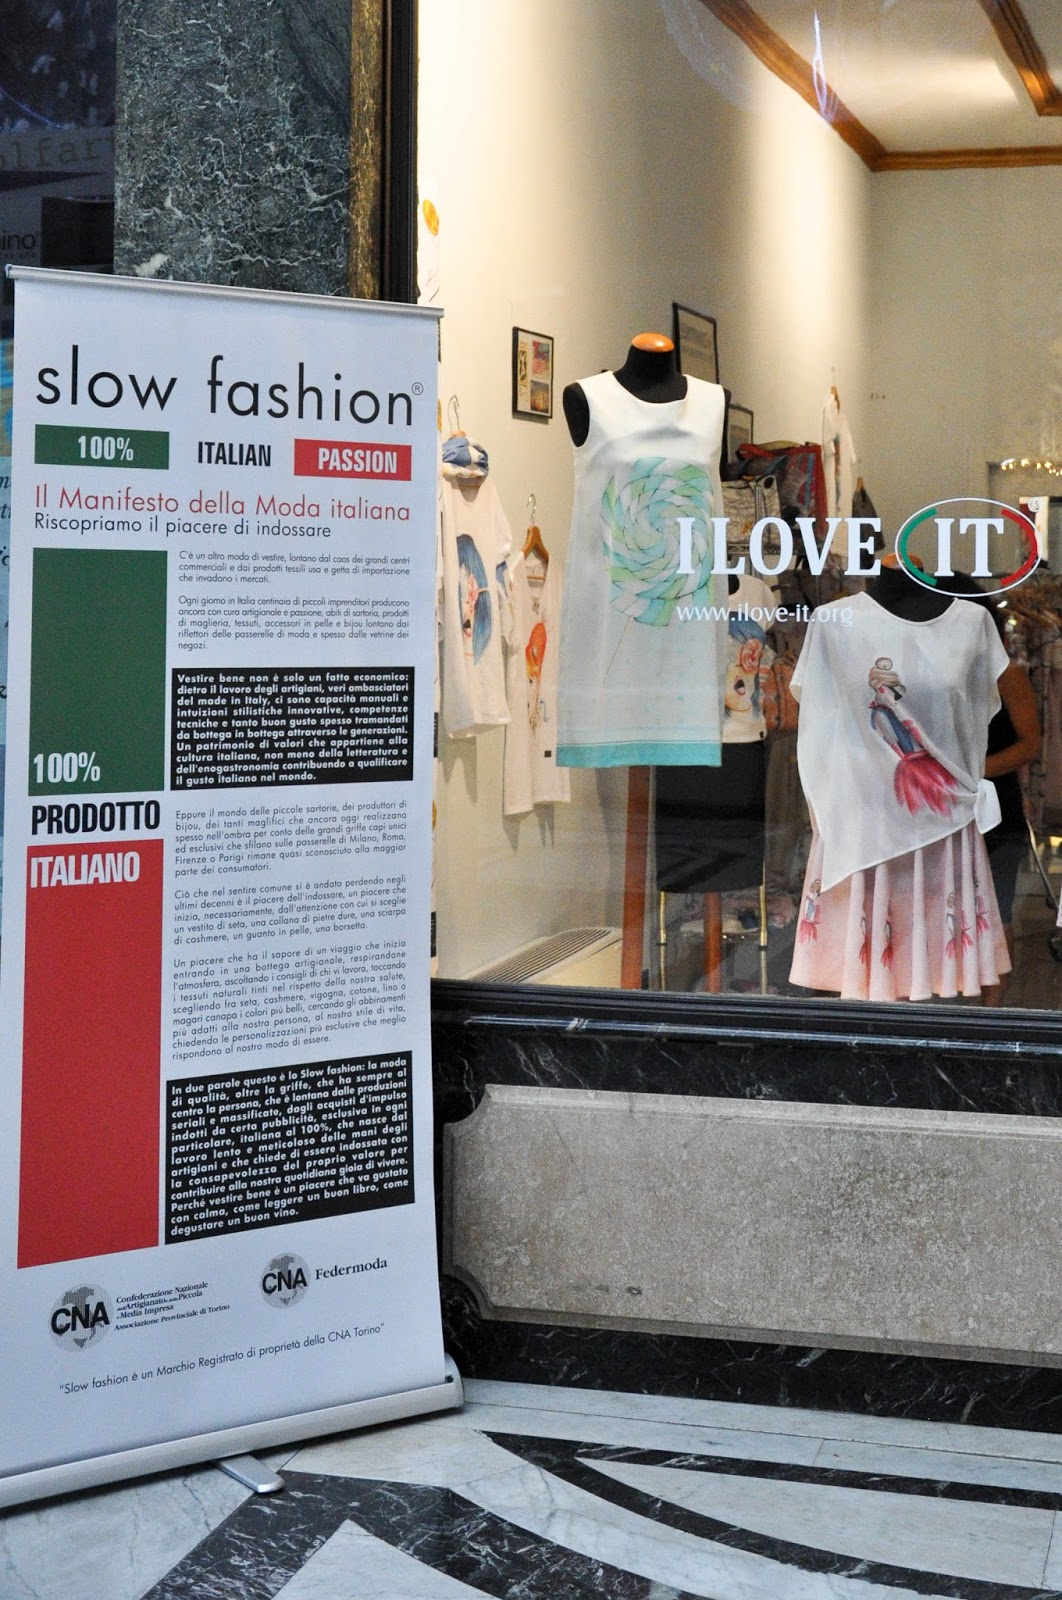 Slow Fashion Movement, Galleria San Federico, Turin, Italy